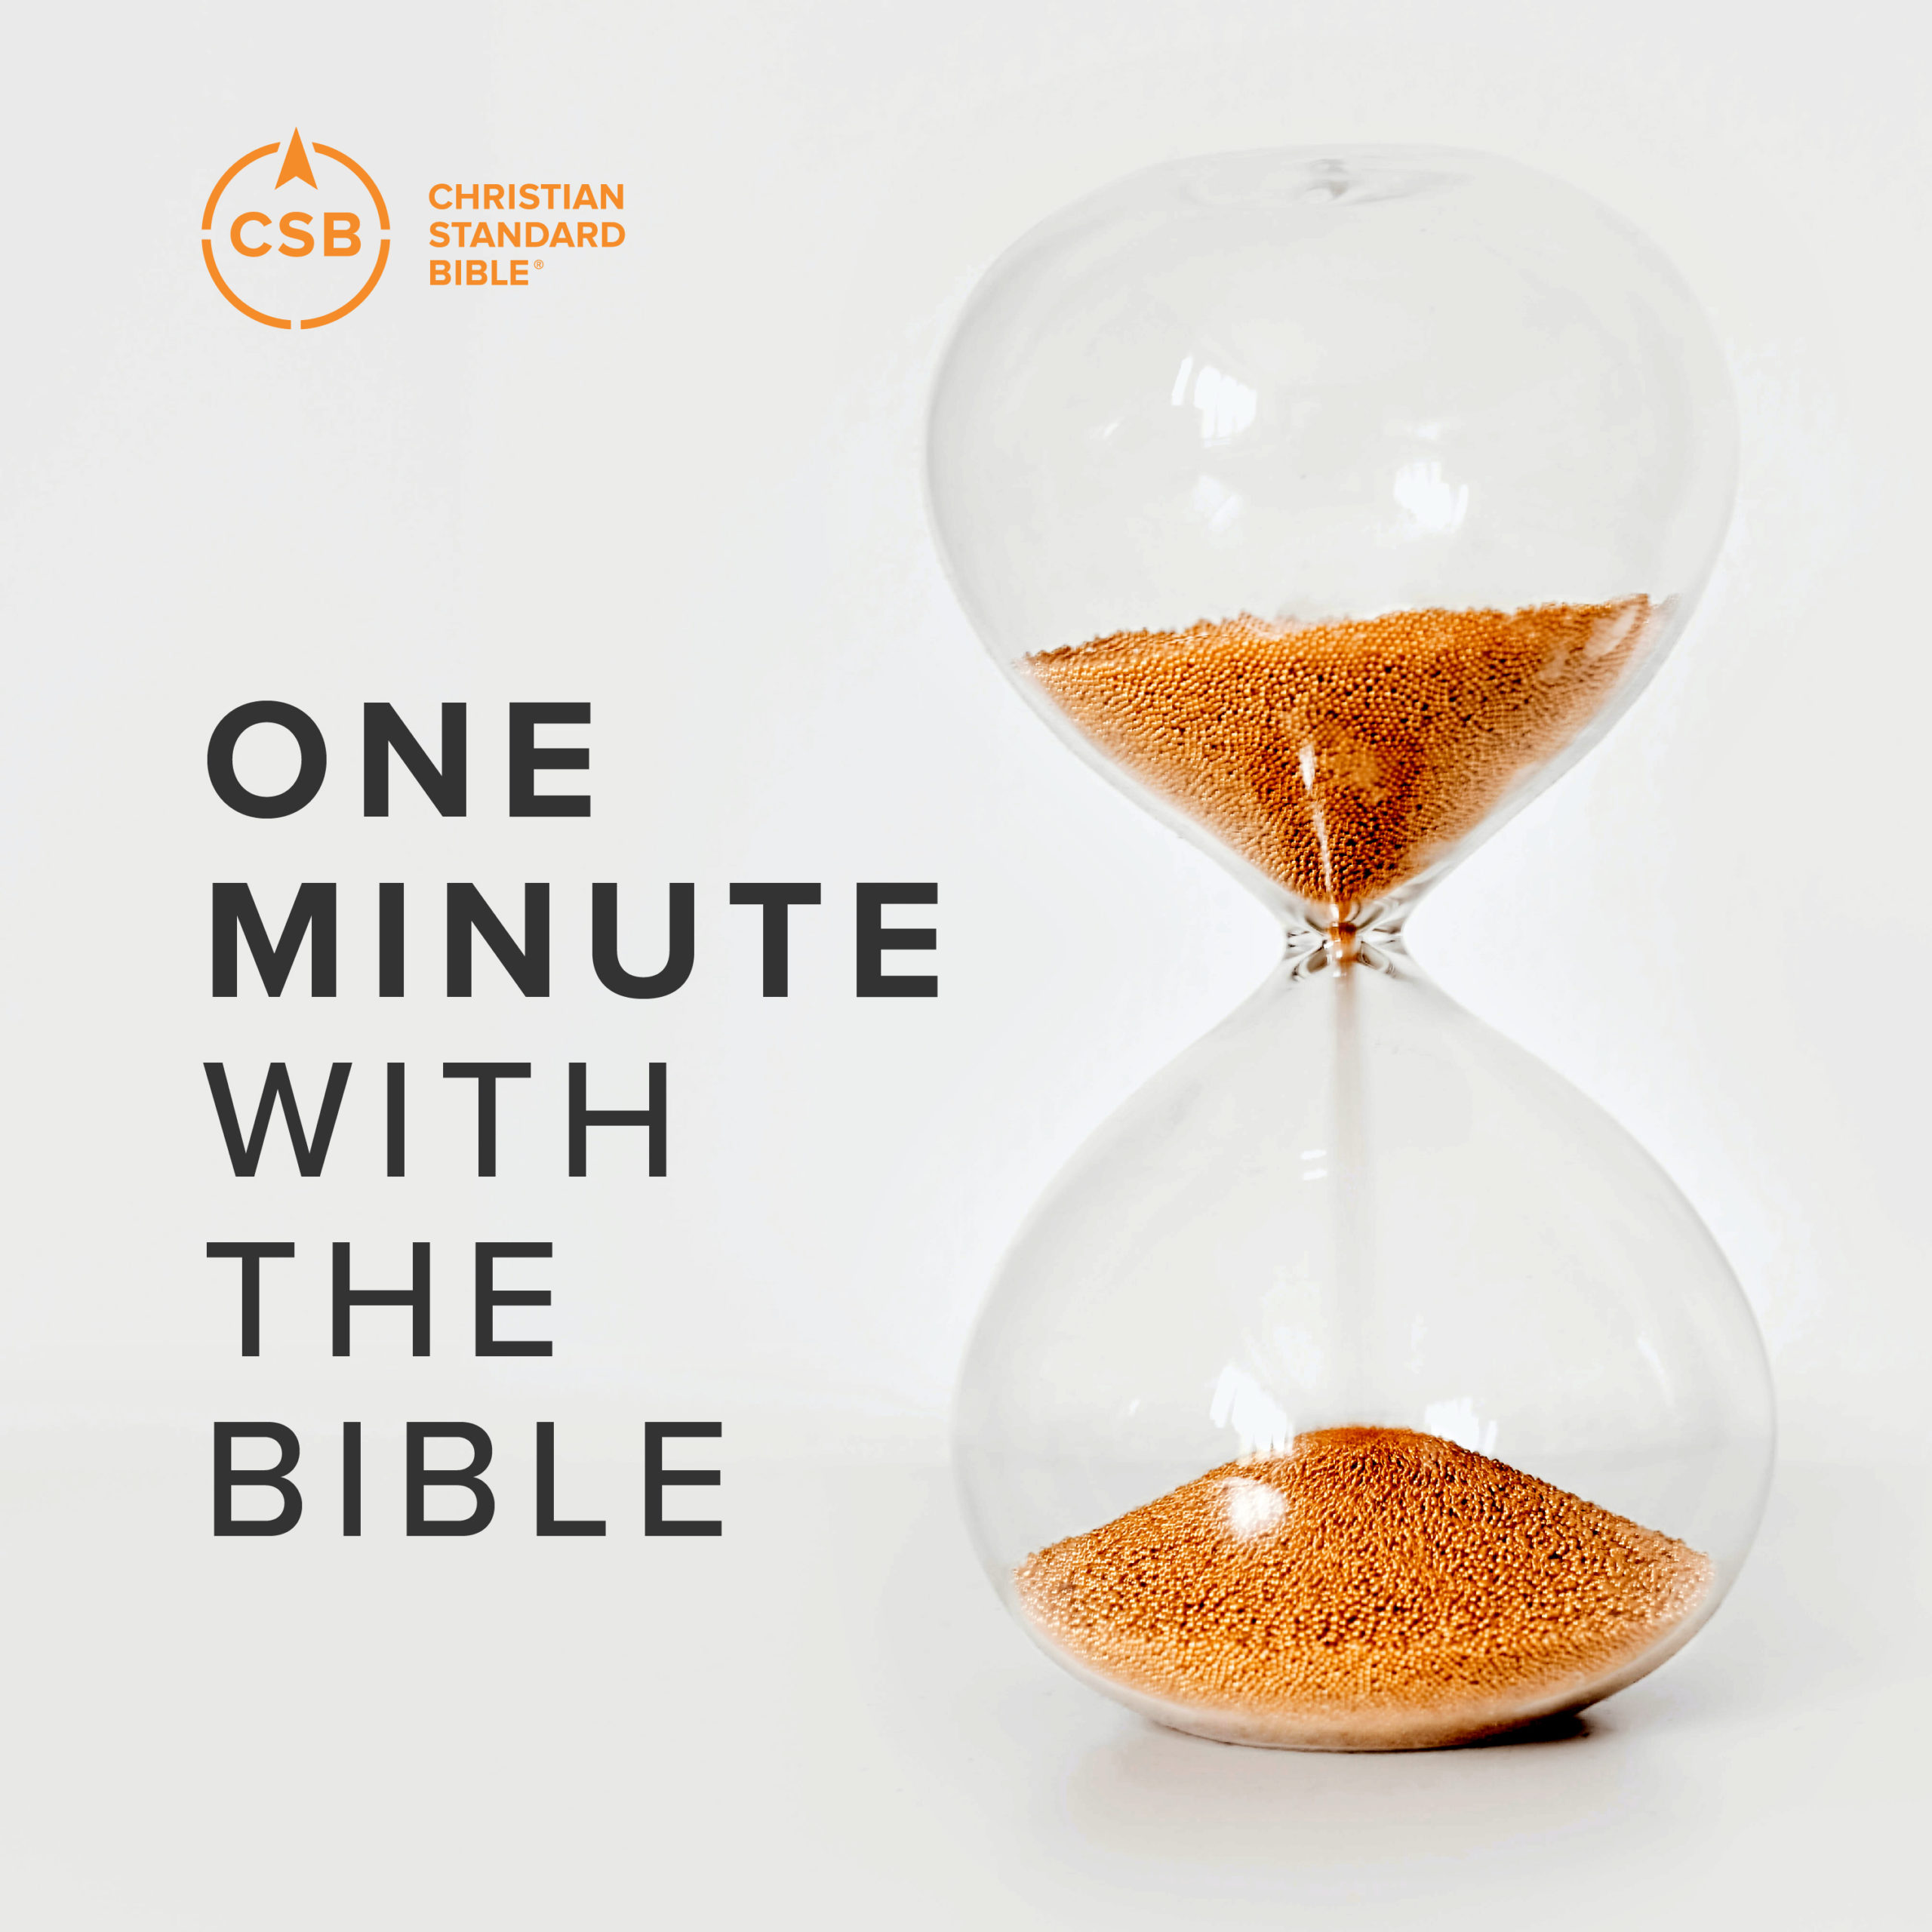 CSB Bible Podcast